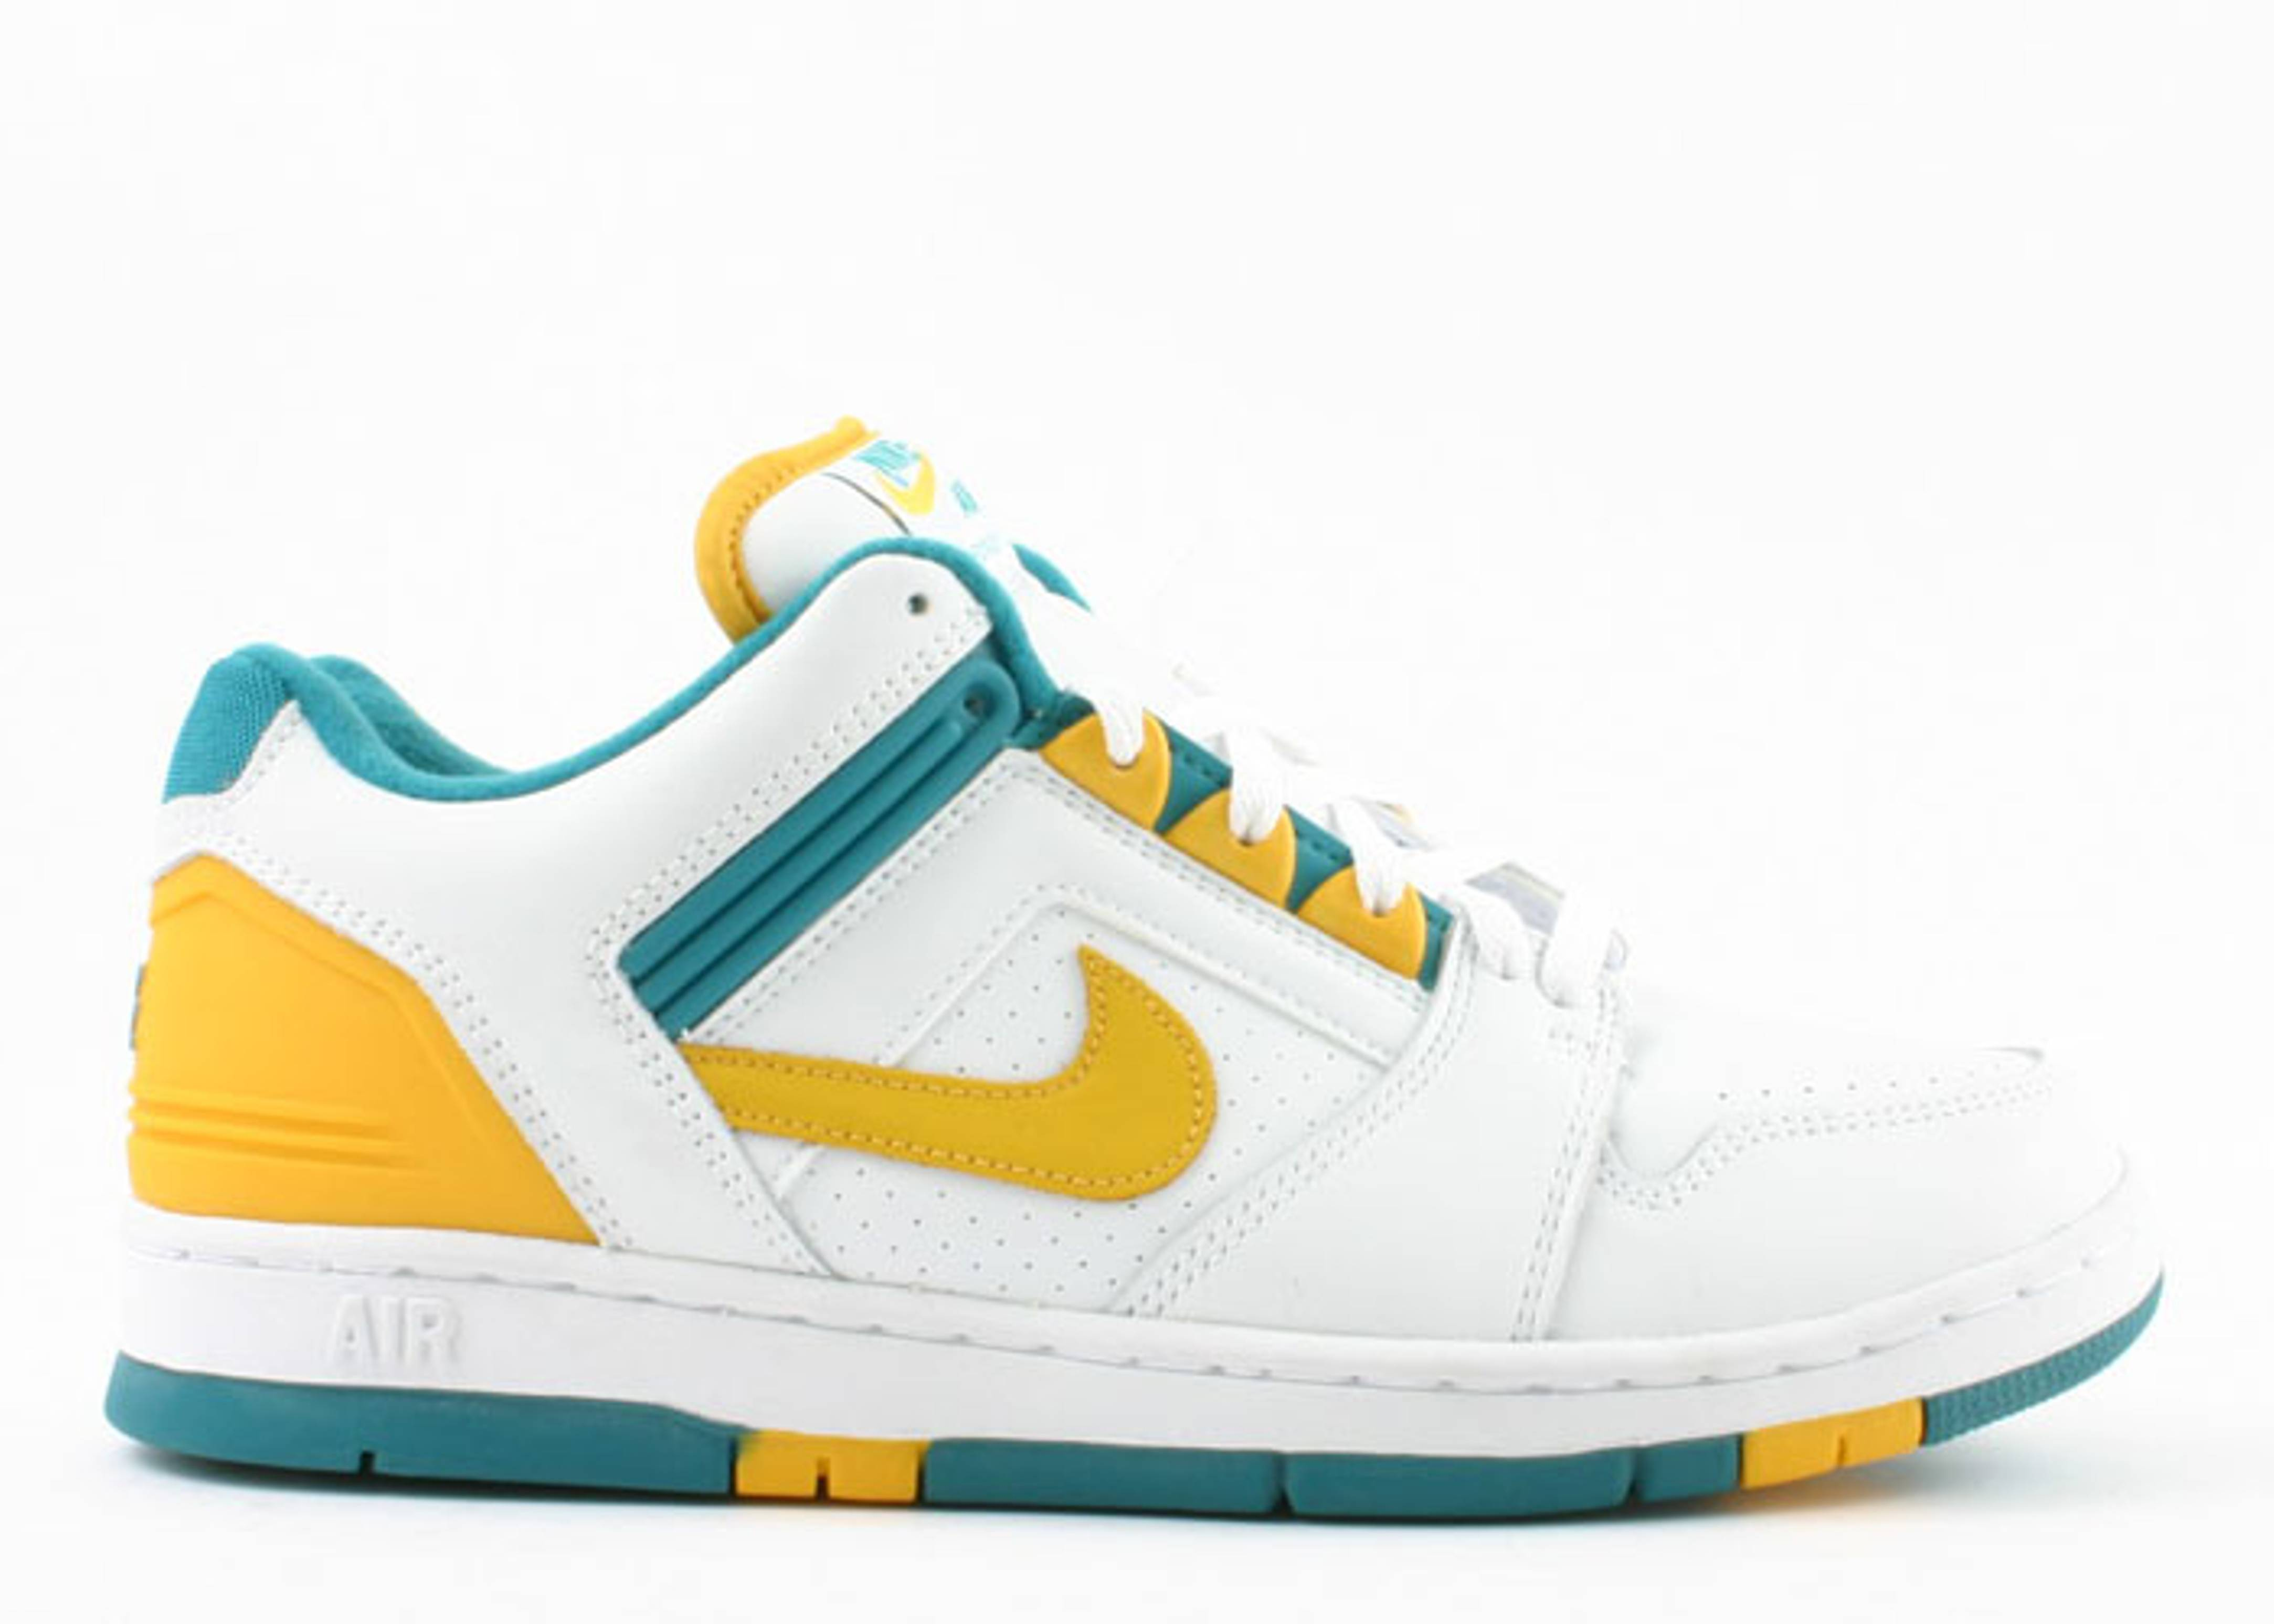 the best attitude 49d1a 61d5a ... Sky-Goldenrod nike. air force 2 low ...